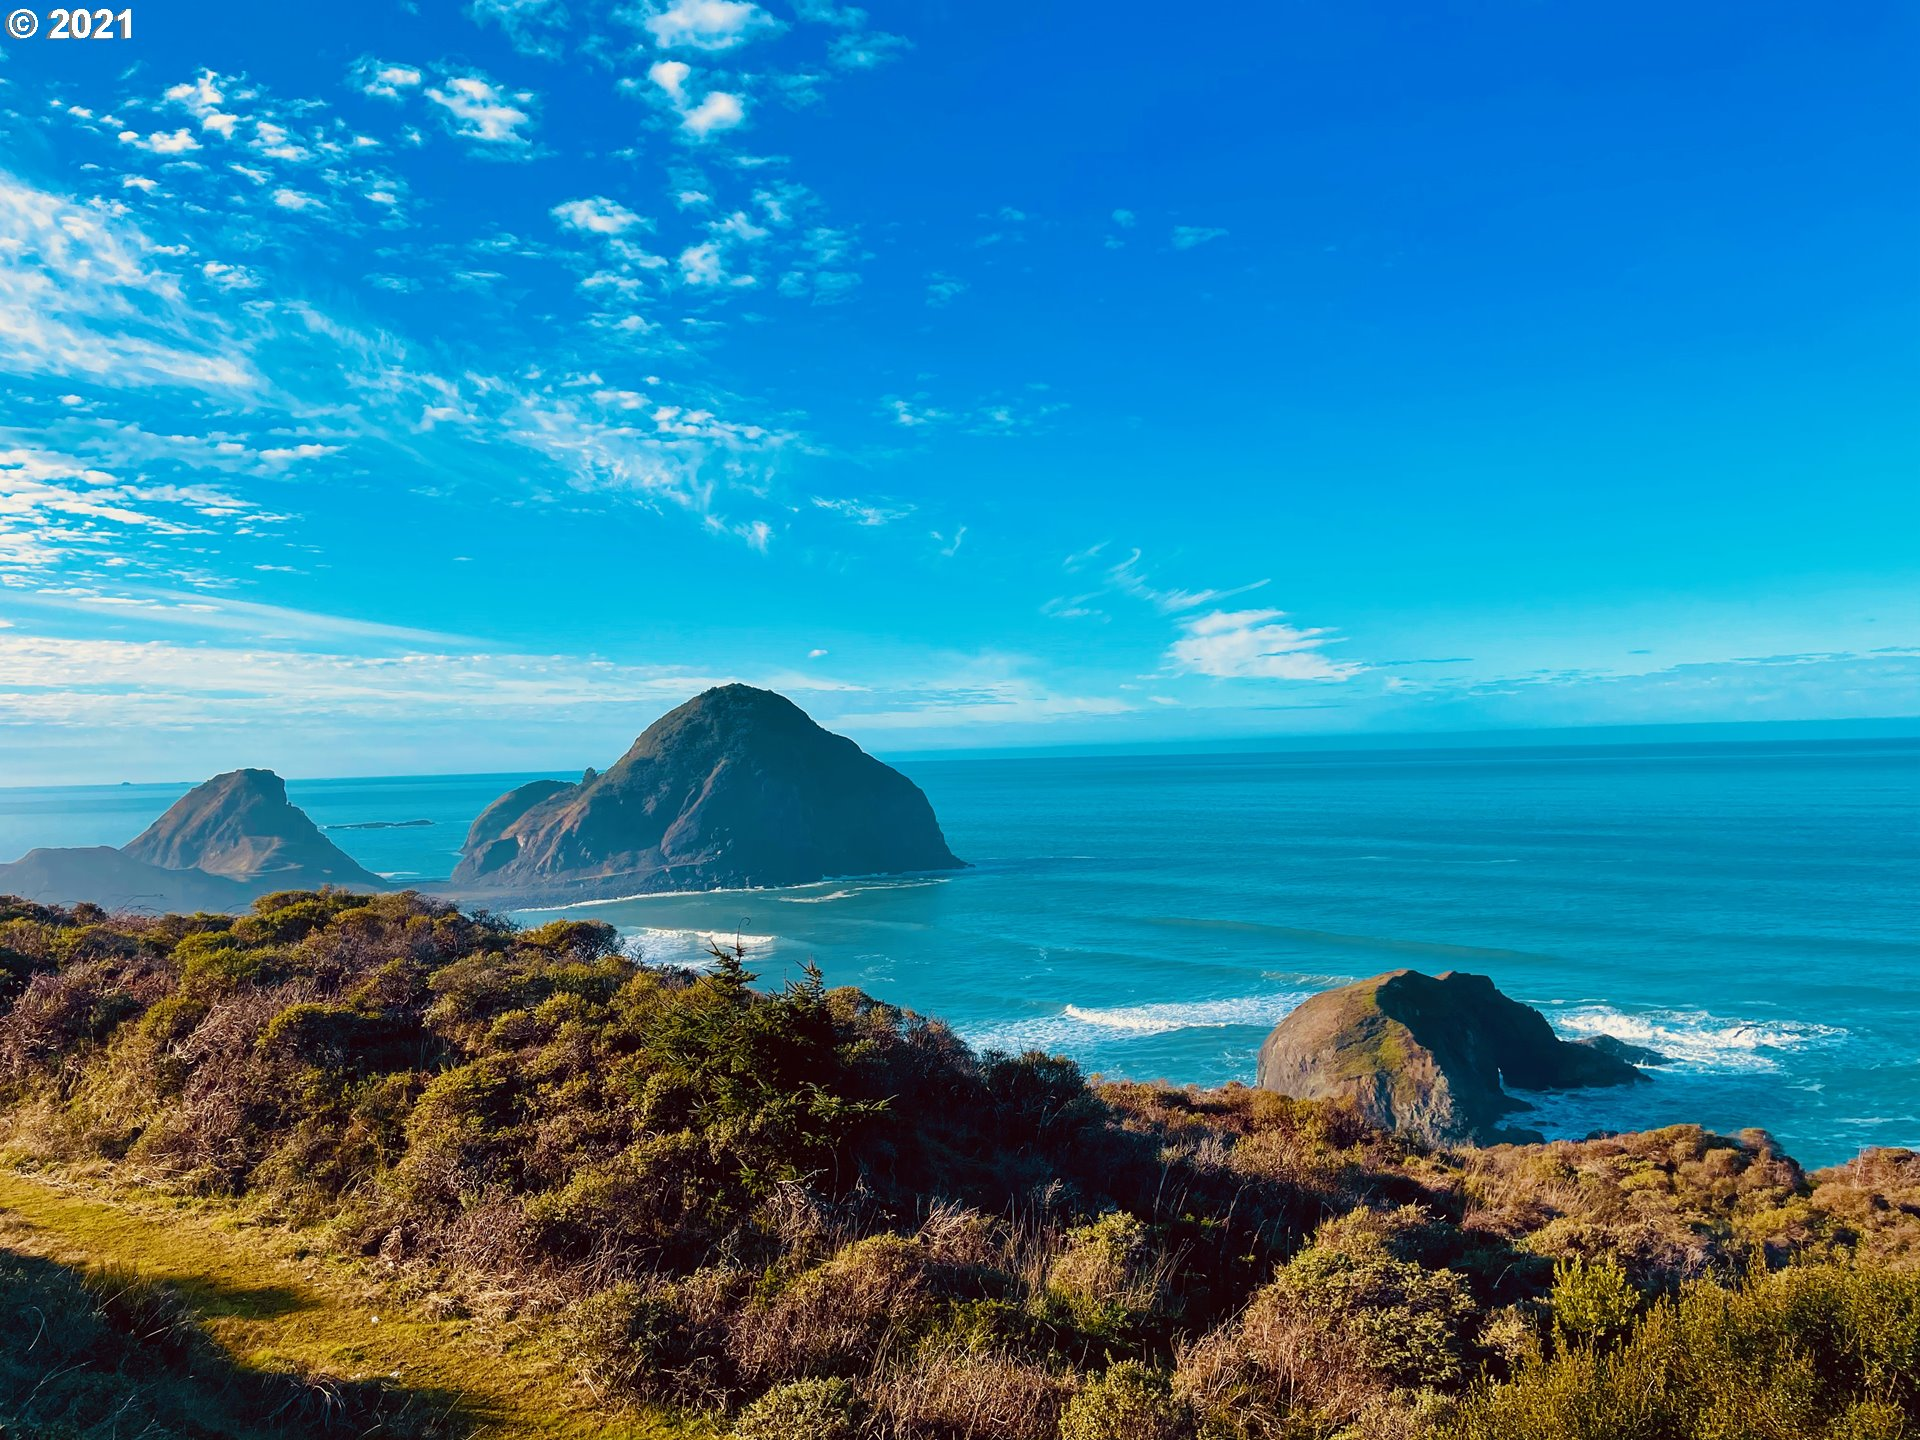 HWY 101 Gold Beach, Brookings Home Listings - Pacific Coastal Real Estate